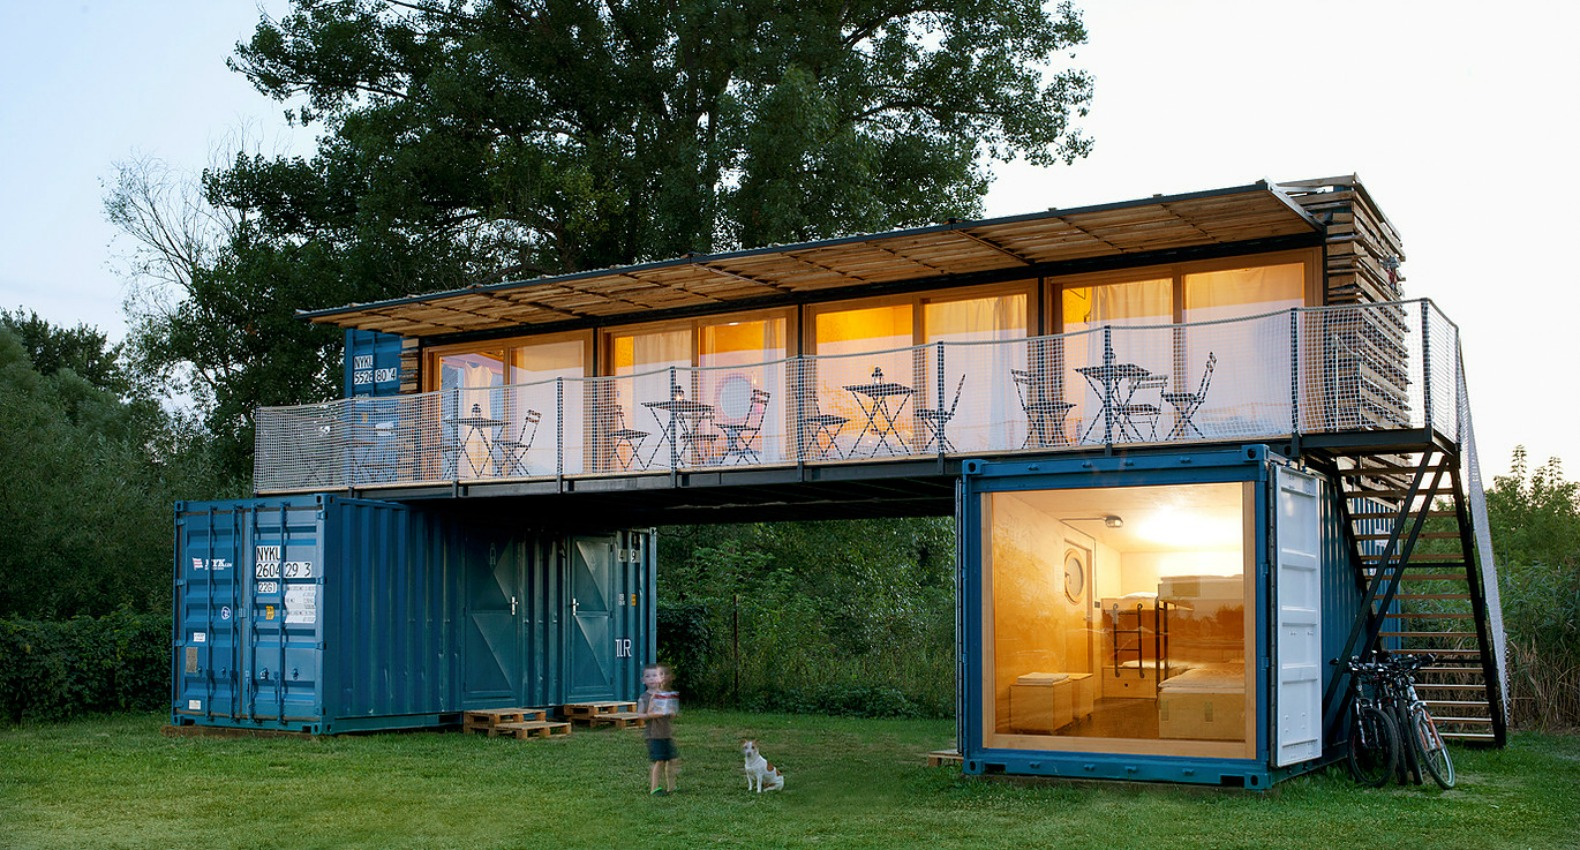 Shipping container hotel inhabitat green design innovation architecture green building - Container van homes ...